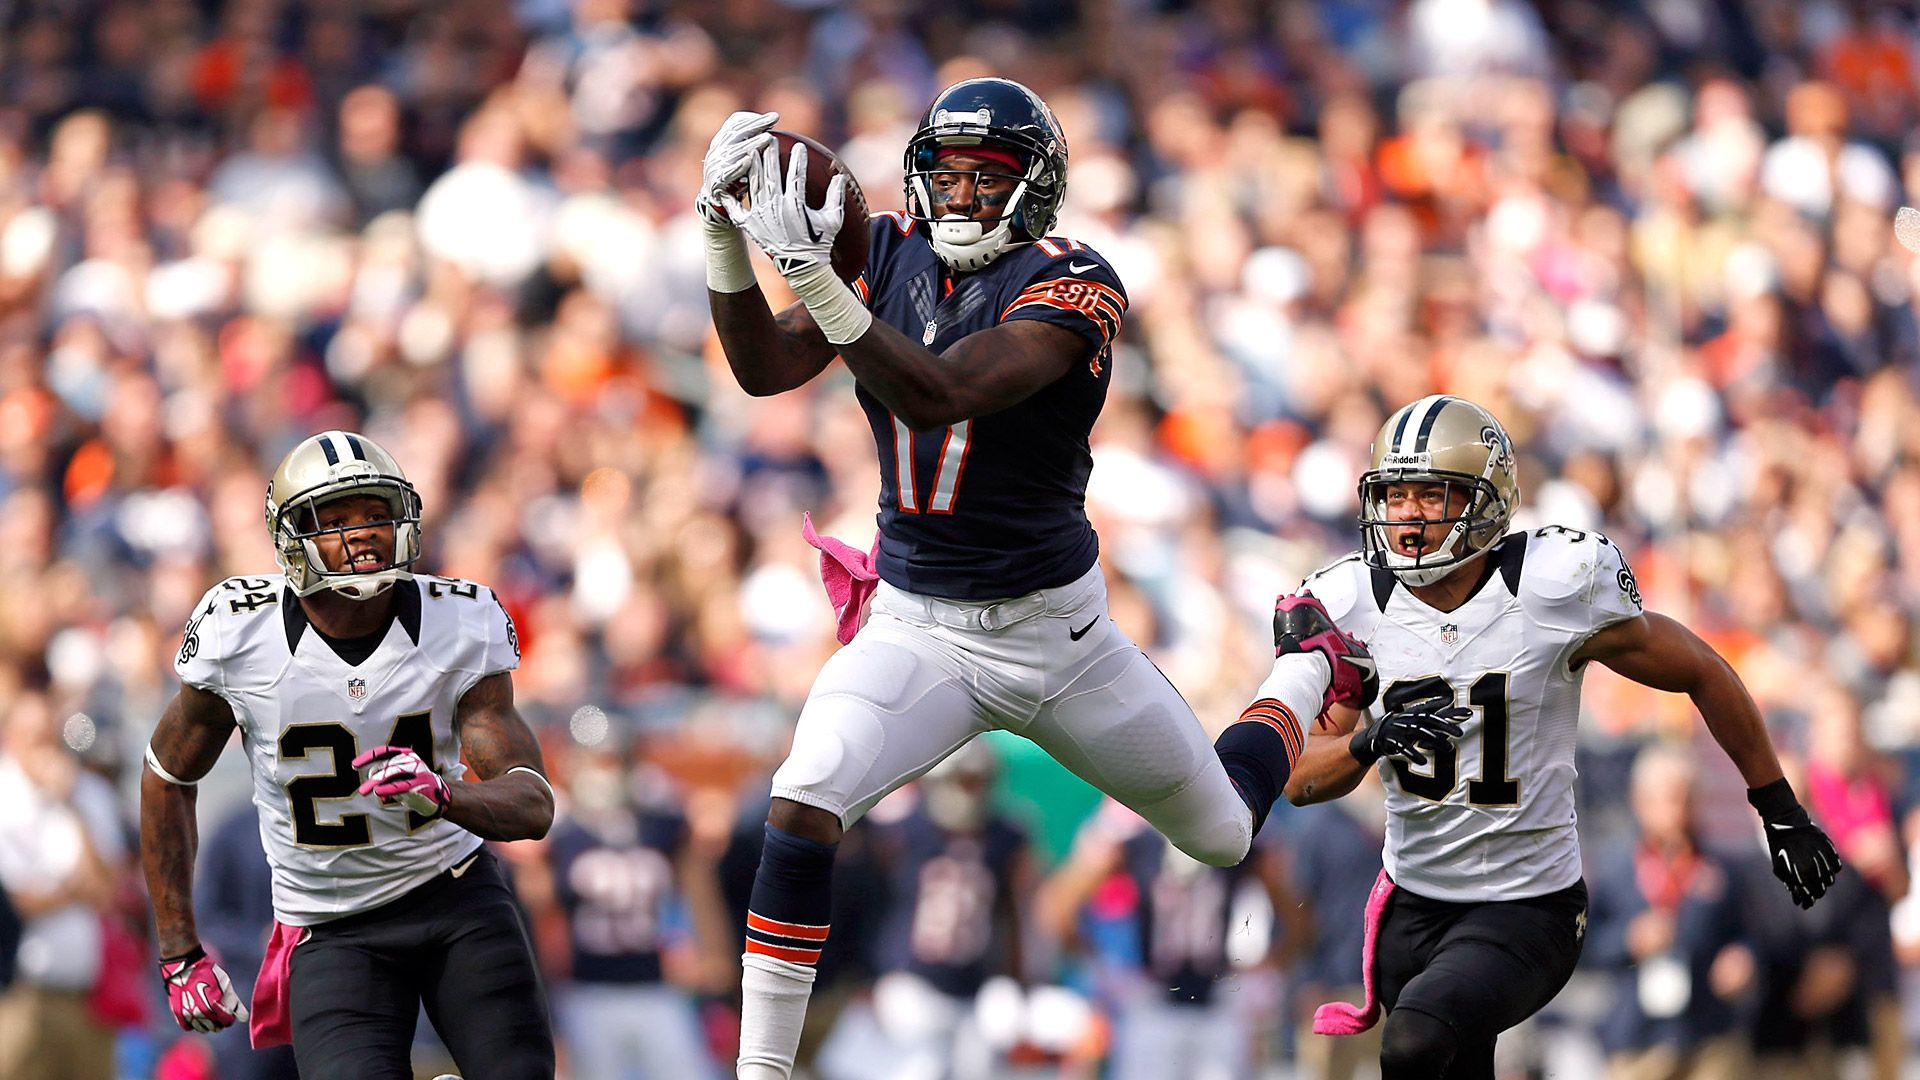 super popular 96081 6d21f Chicago Bears receiver Alshon Jeffery becoming harder to ...